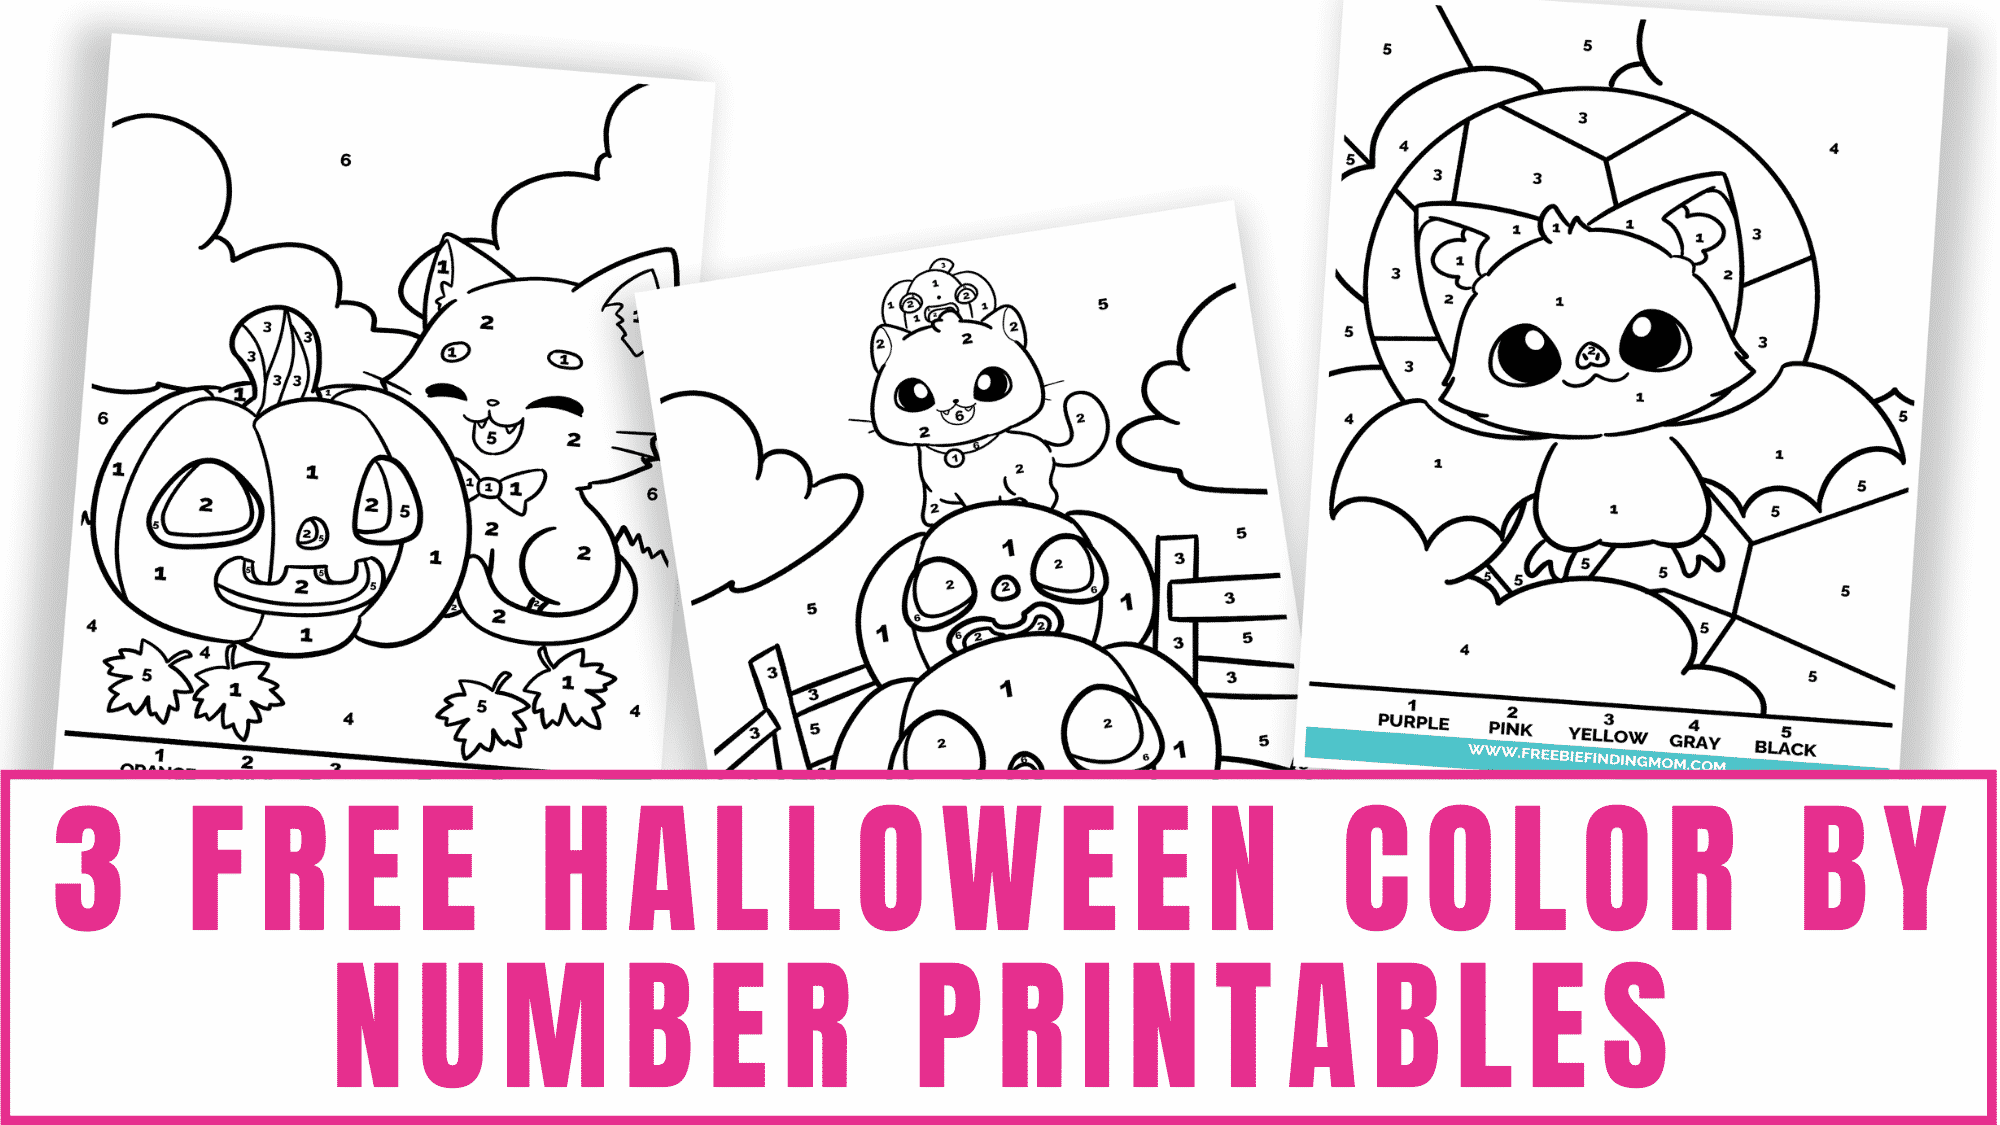 Looking for some Halloween fun? These free Halloween color by number printables will keep your preschoolers and toddlers busy at least for a few minutes. Another bonus is they'll get to work on their numbers and counting as well.